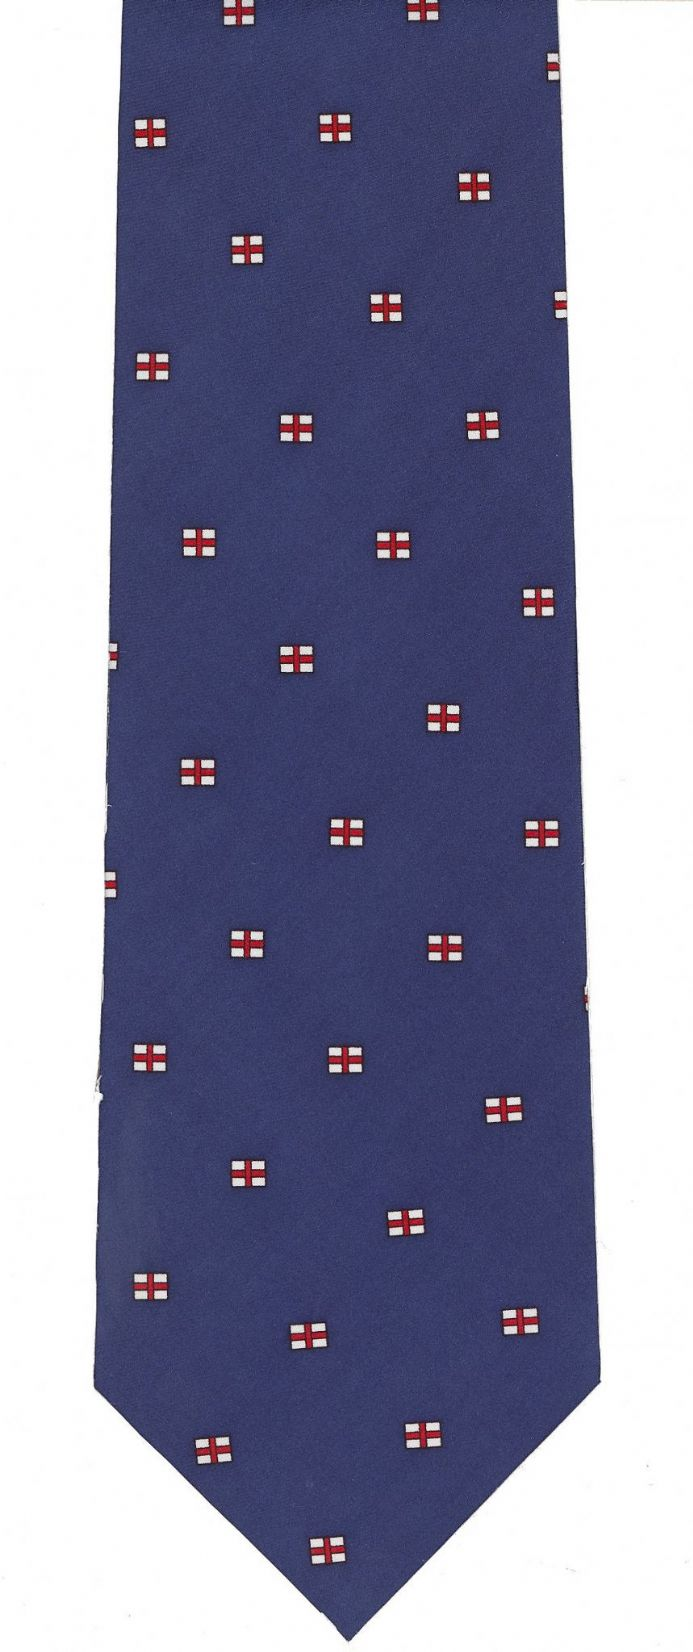 England Silk Tie with Cross of St George design